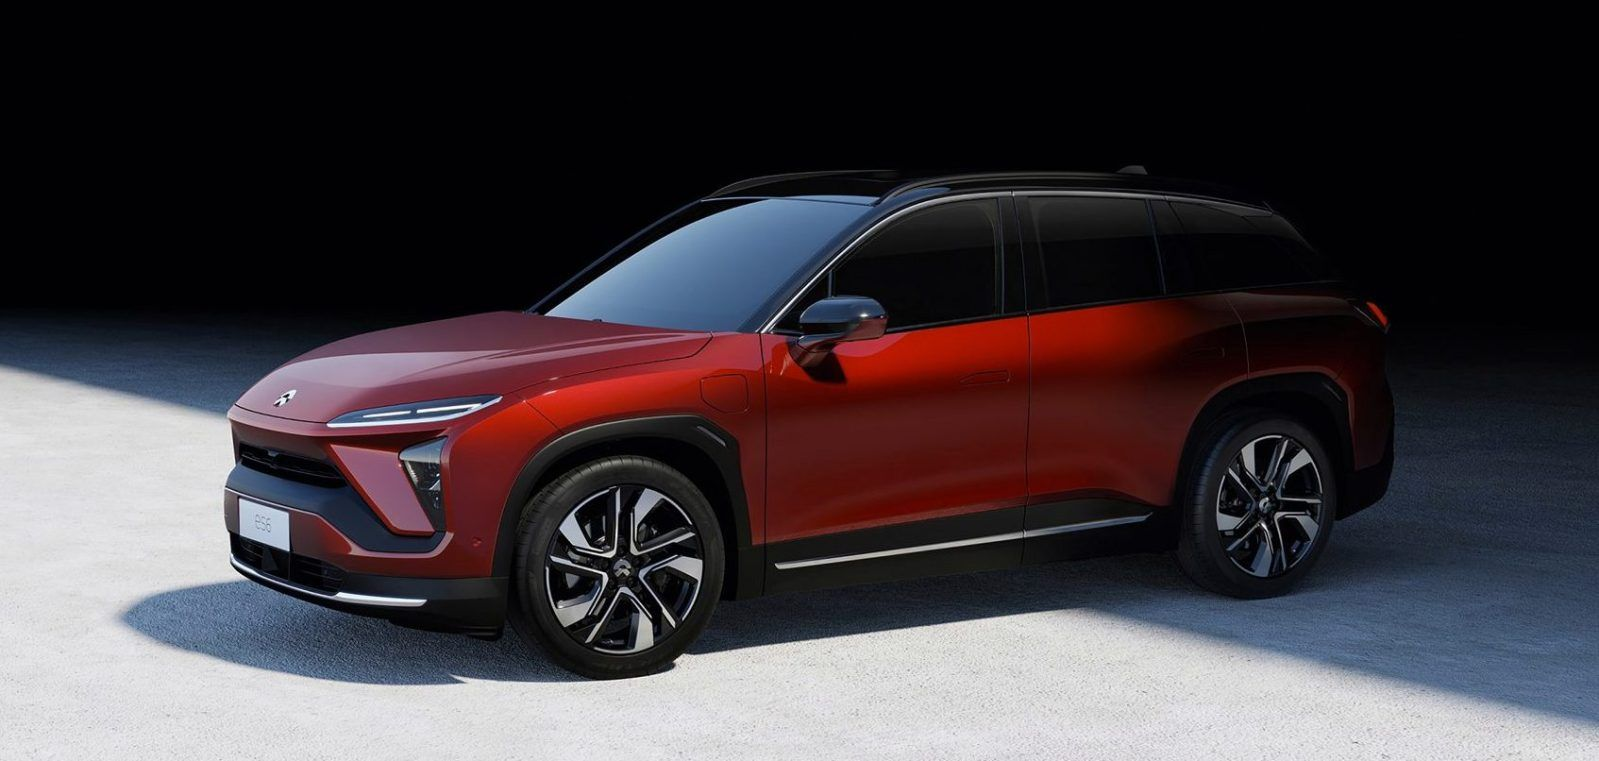 NIO launches new ES6 electric SUV with up to 300 miles of